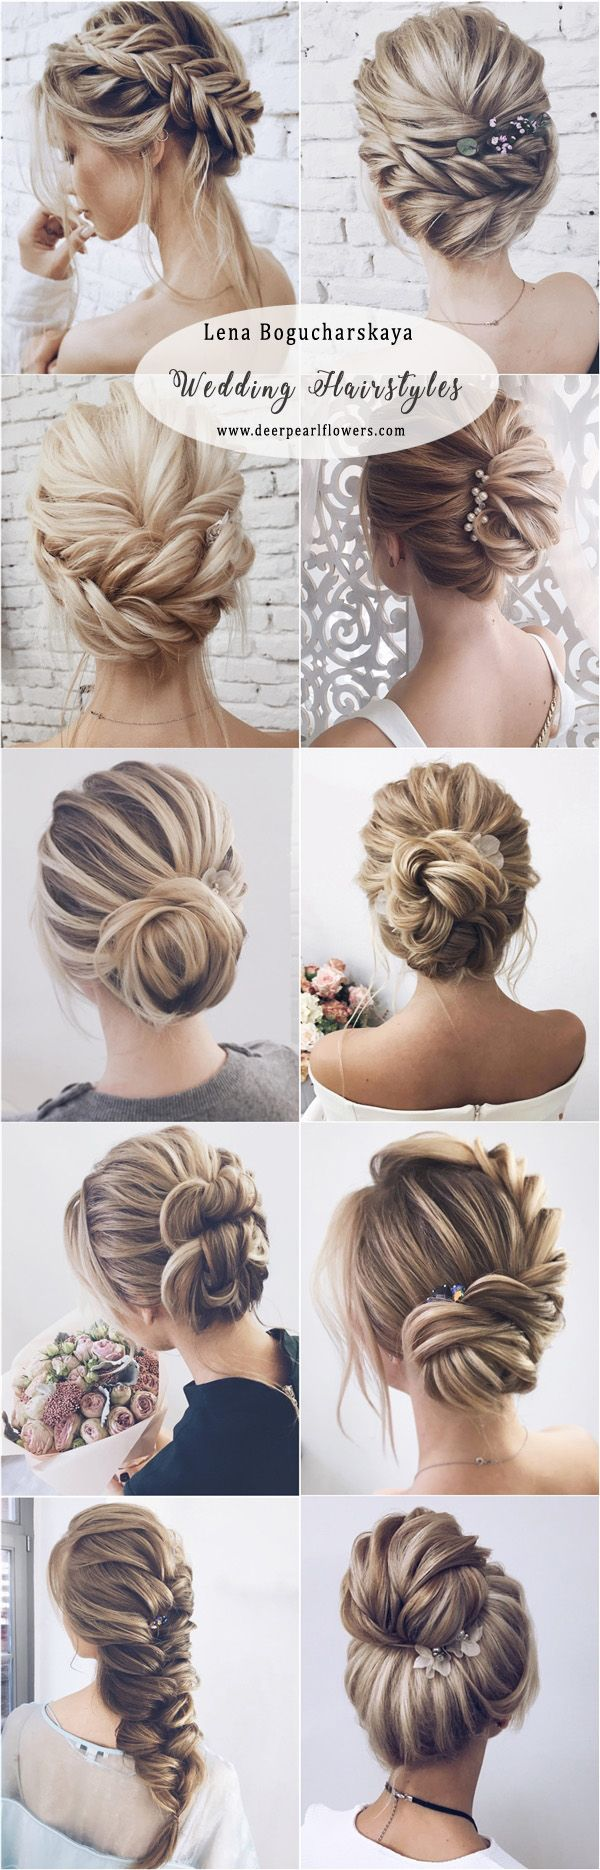 Best Hairstyles Ideas On Pinterest Hair Styles Braided - Hairstyle girl 2017 video